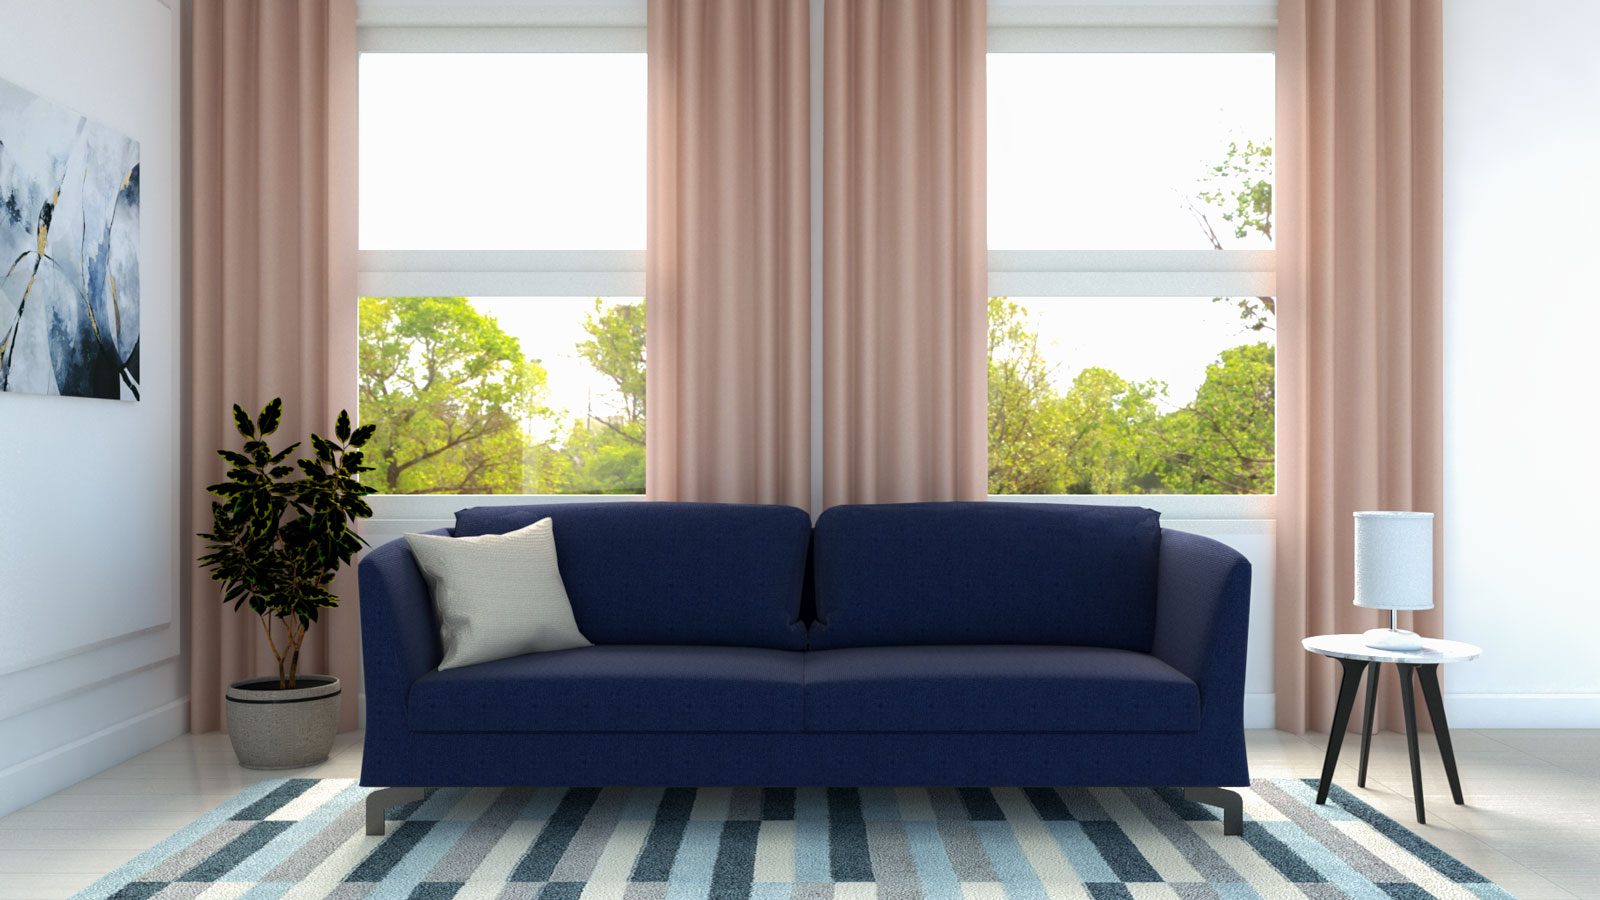 What Color Curtains Go With Blue Couch 10 Interesting Color Ideas Roomdsign Com